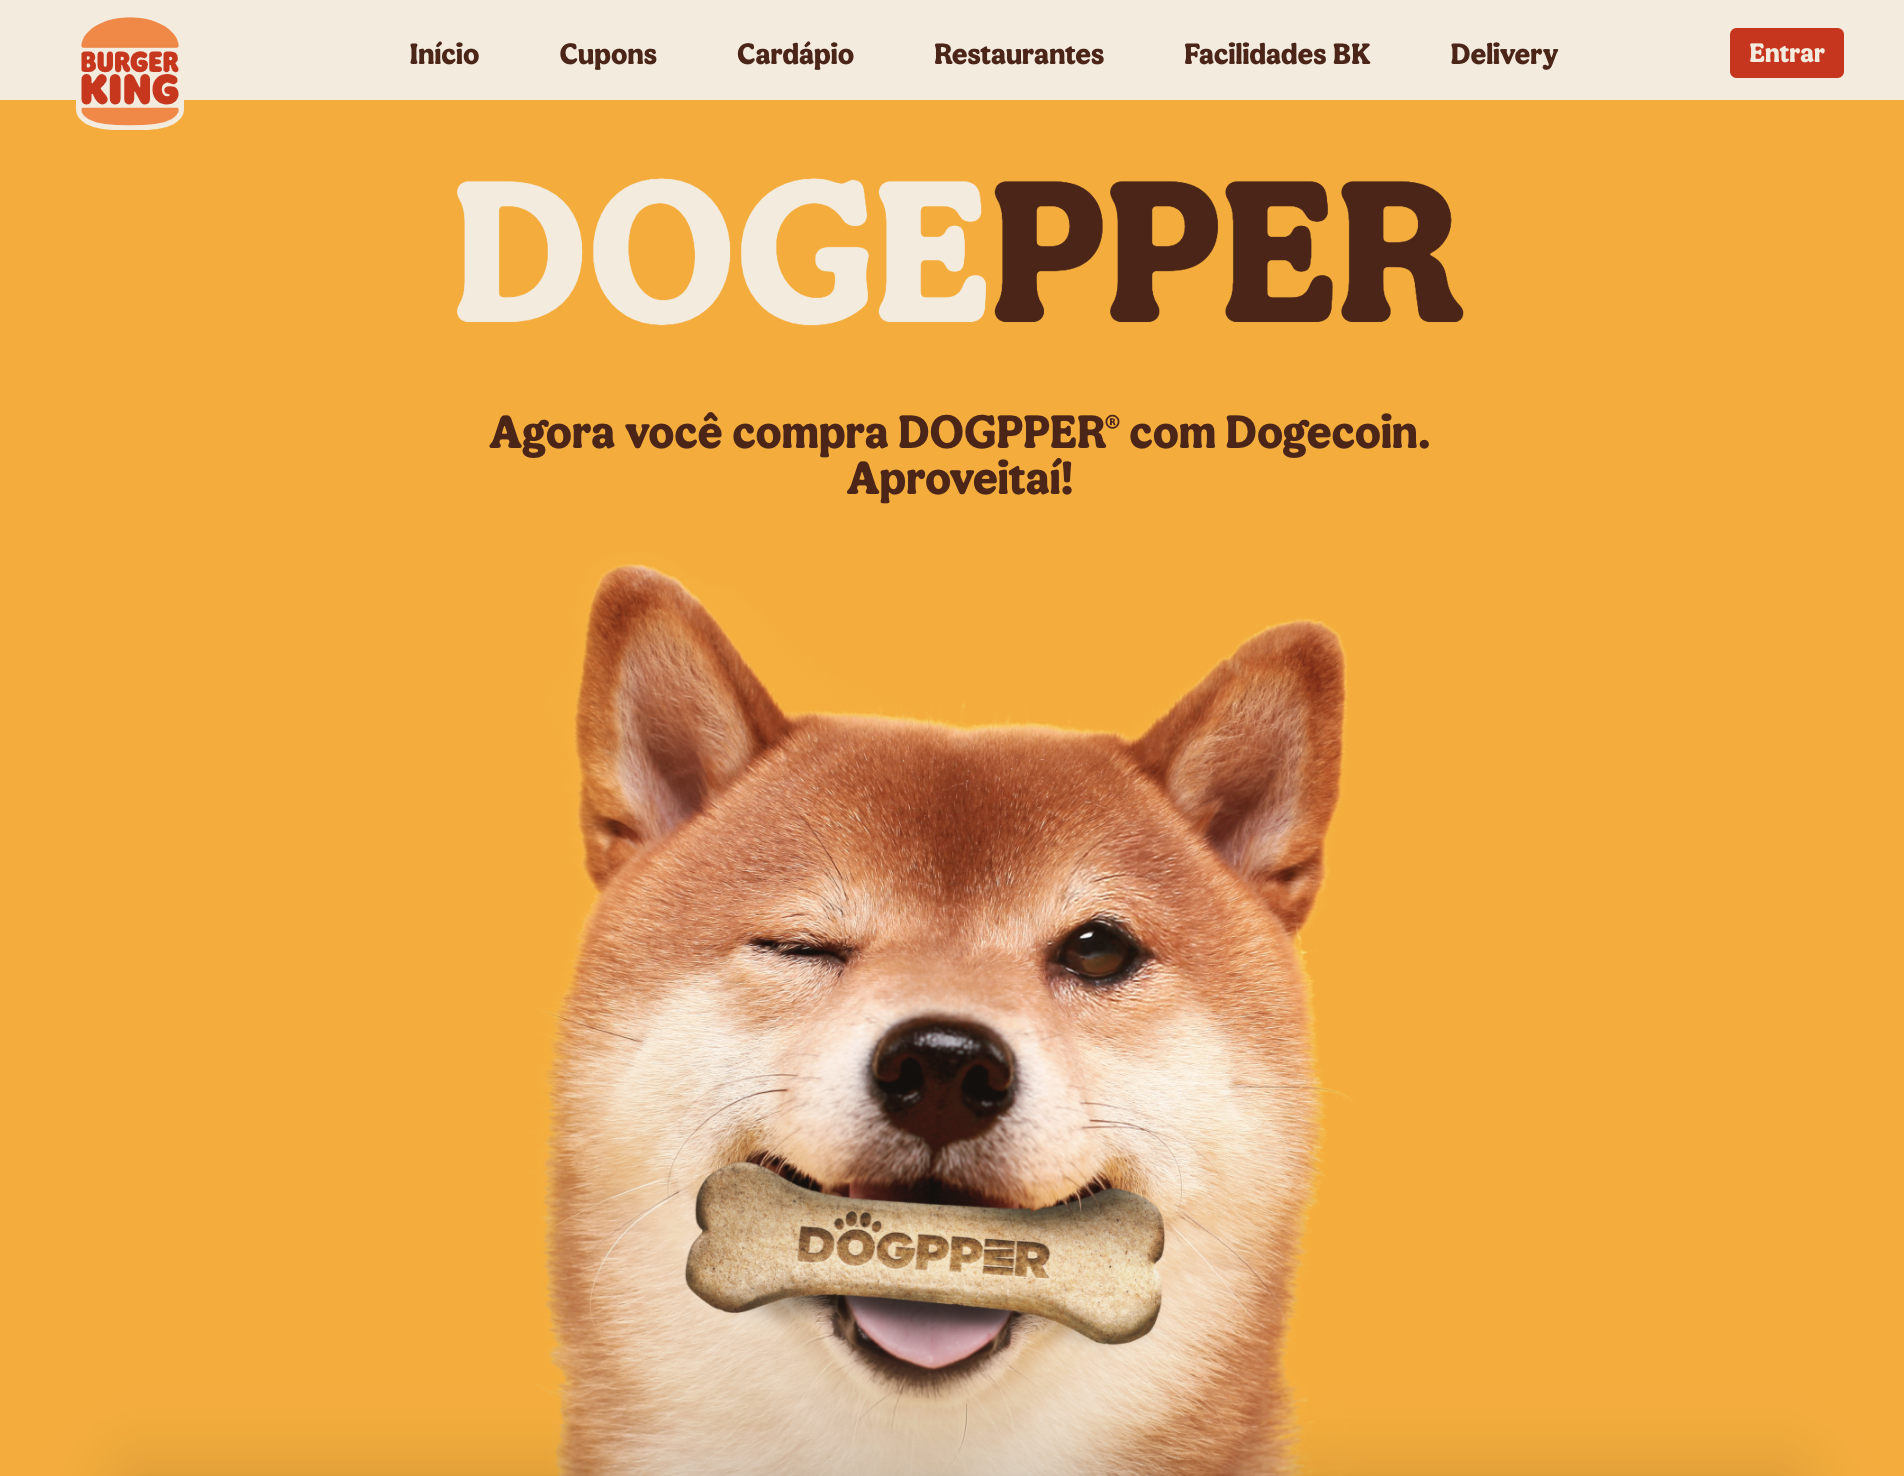 Burger King Brazil Will Accept Dogecoin for 'Dogpper' Dog Food